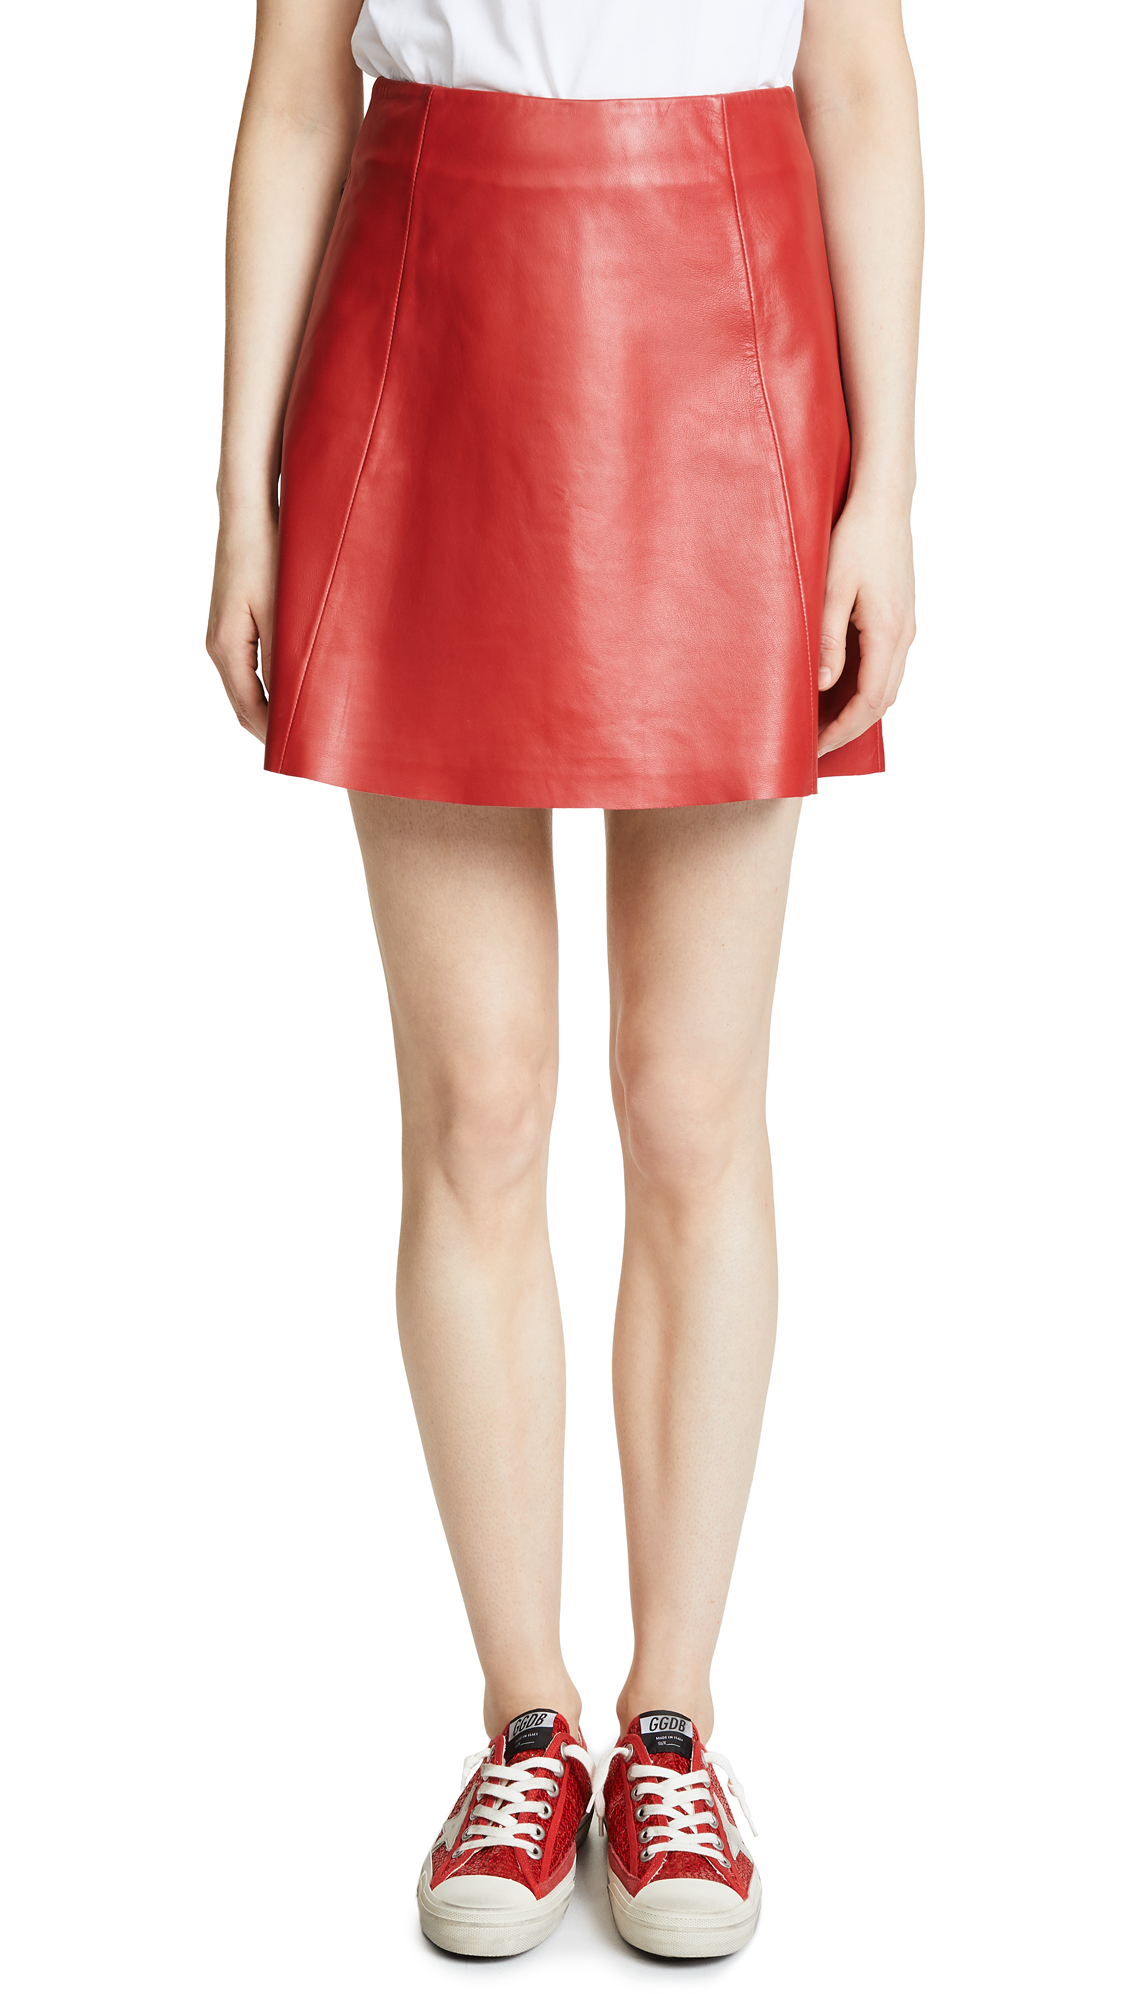 VEDA Leather Circle Mini Skirt In Red